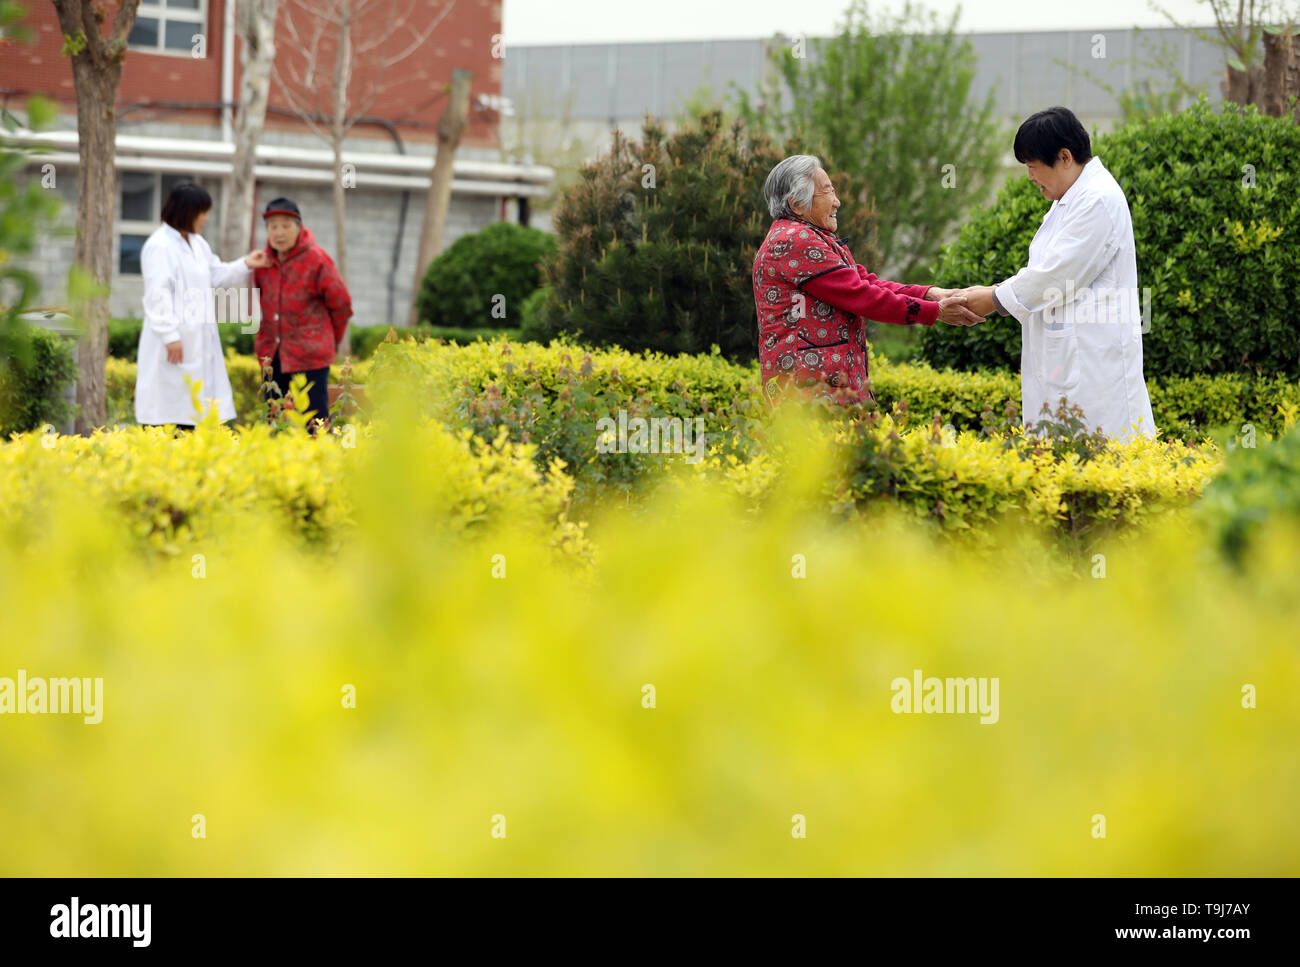 Beijing, China's Hebei Province. 5th May, 2019. Elderly citizens are accompanied by medical care personnels at an elderly care center in Taocheng District of Hengshui City, north China's Hebei Province, May 5, 2019. Chinese economy is transitioning from high-speed growth to high-quality development. Credit: Mu Yu/Xinhua/Alamy Live News - Stock Image